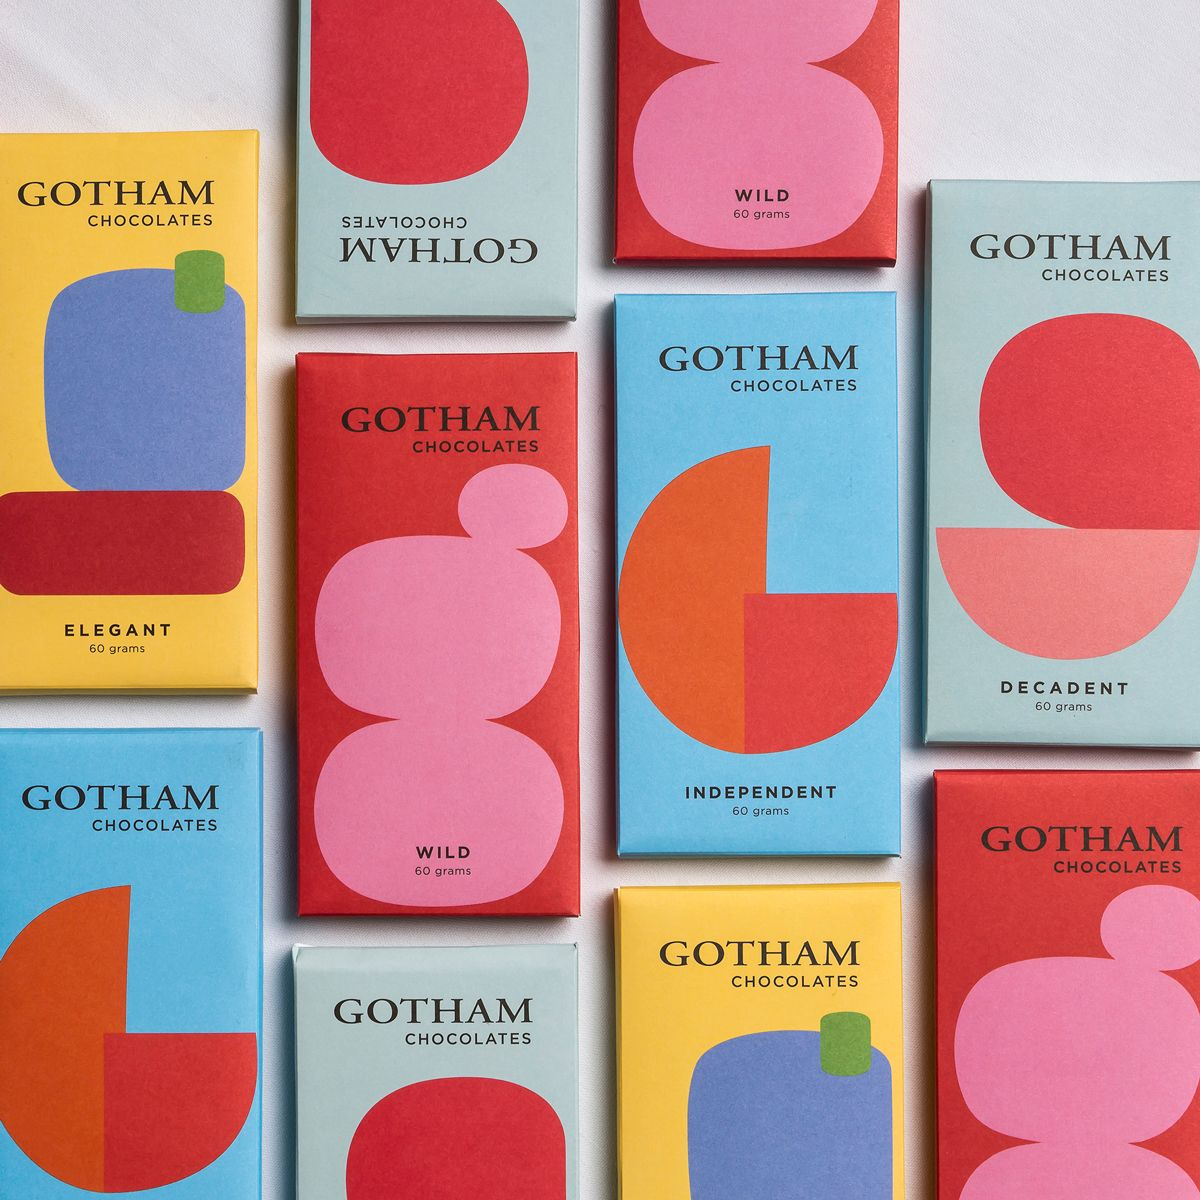 21 Perfect Gifts For Chocolate Lovers Chocolate Packaging Design Packaging Design Inspiration Packaging Design